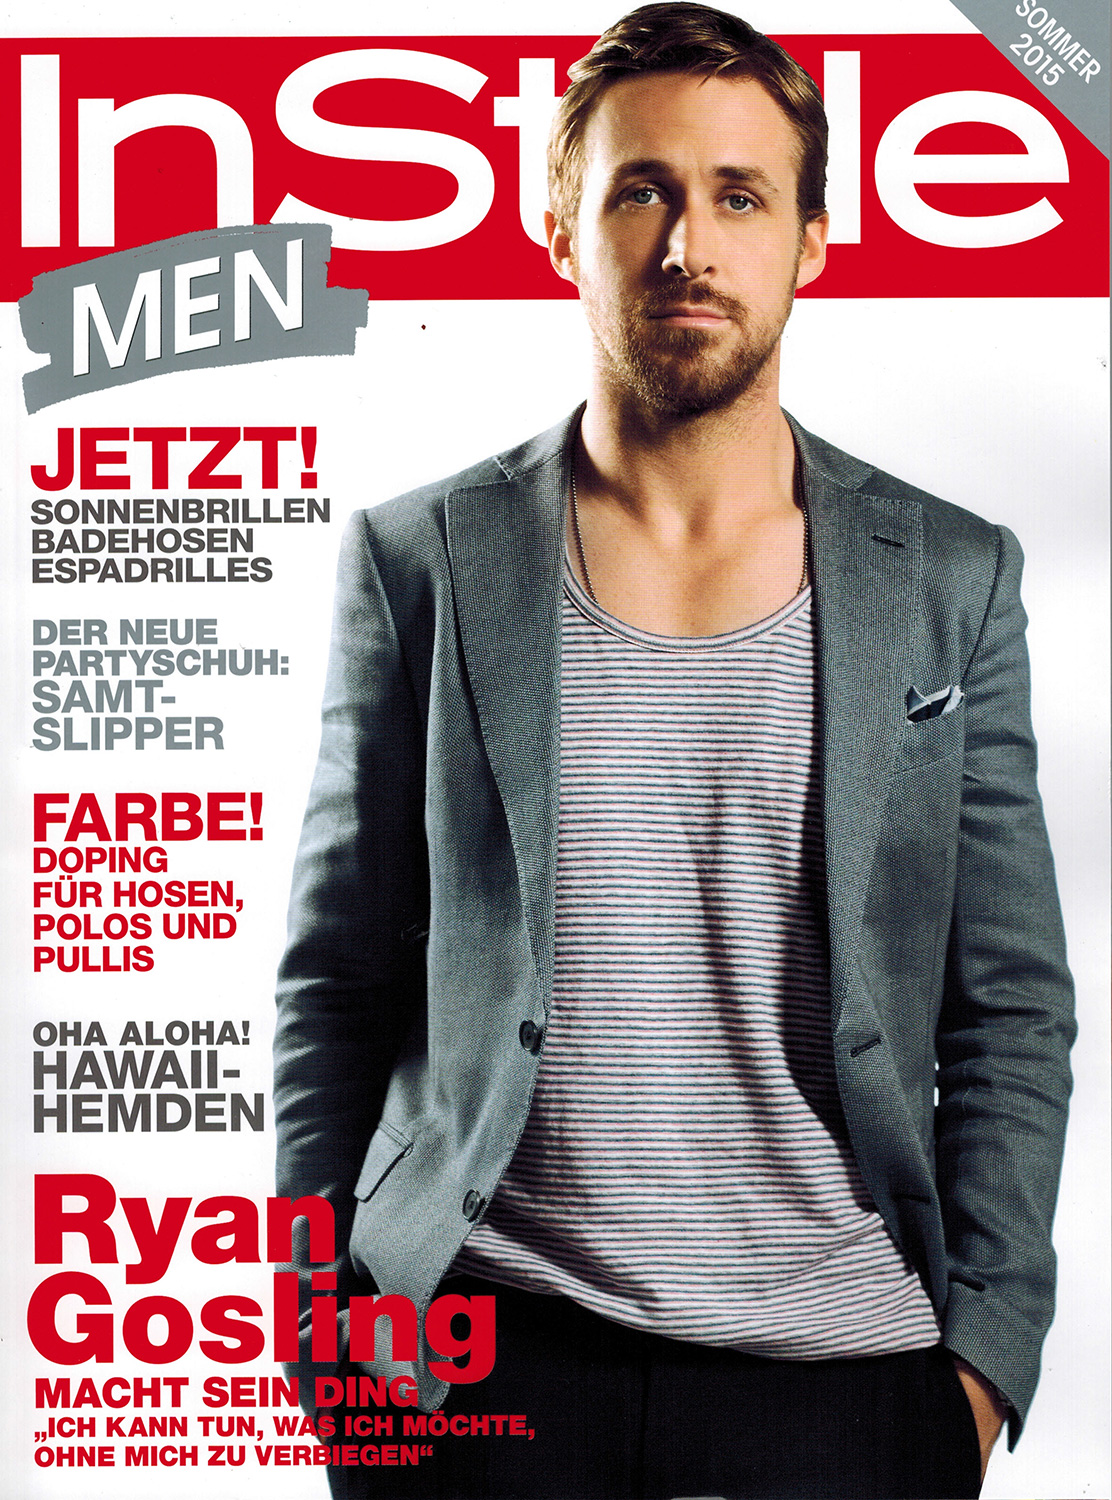 064_A4-Cosmetics_Instyle-Men-06-2015-Cover.jpg